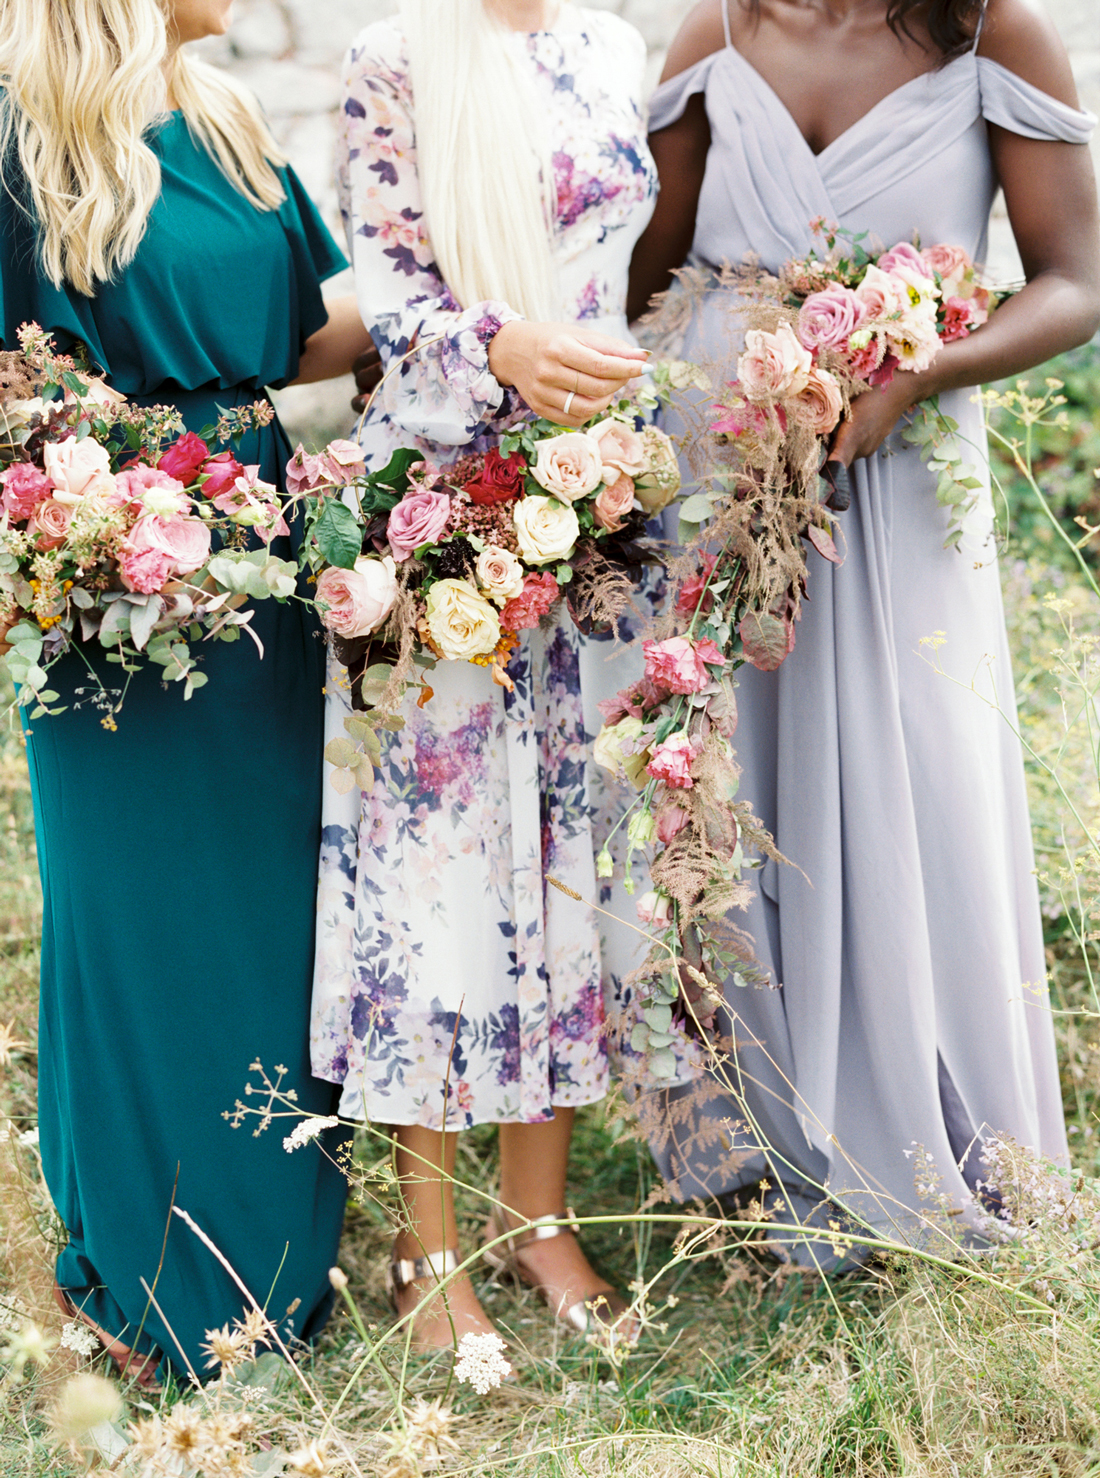 individual bridesmaids dresses in pastel, a jewel tone, and a pattern